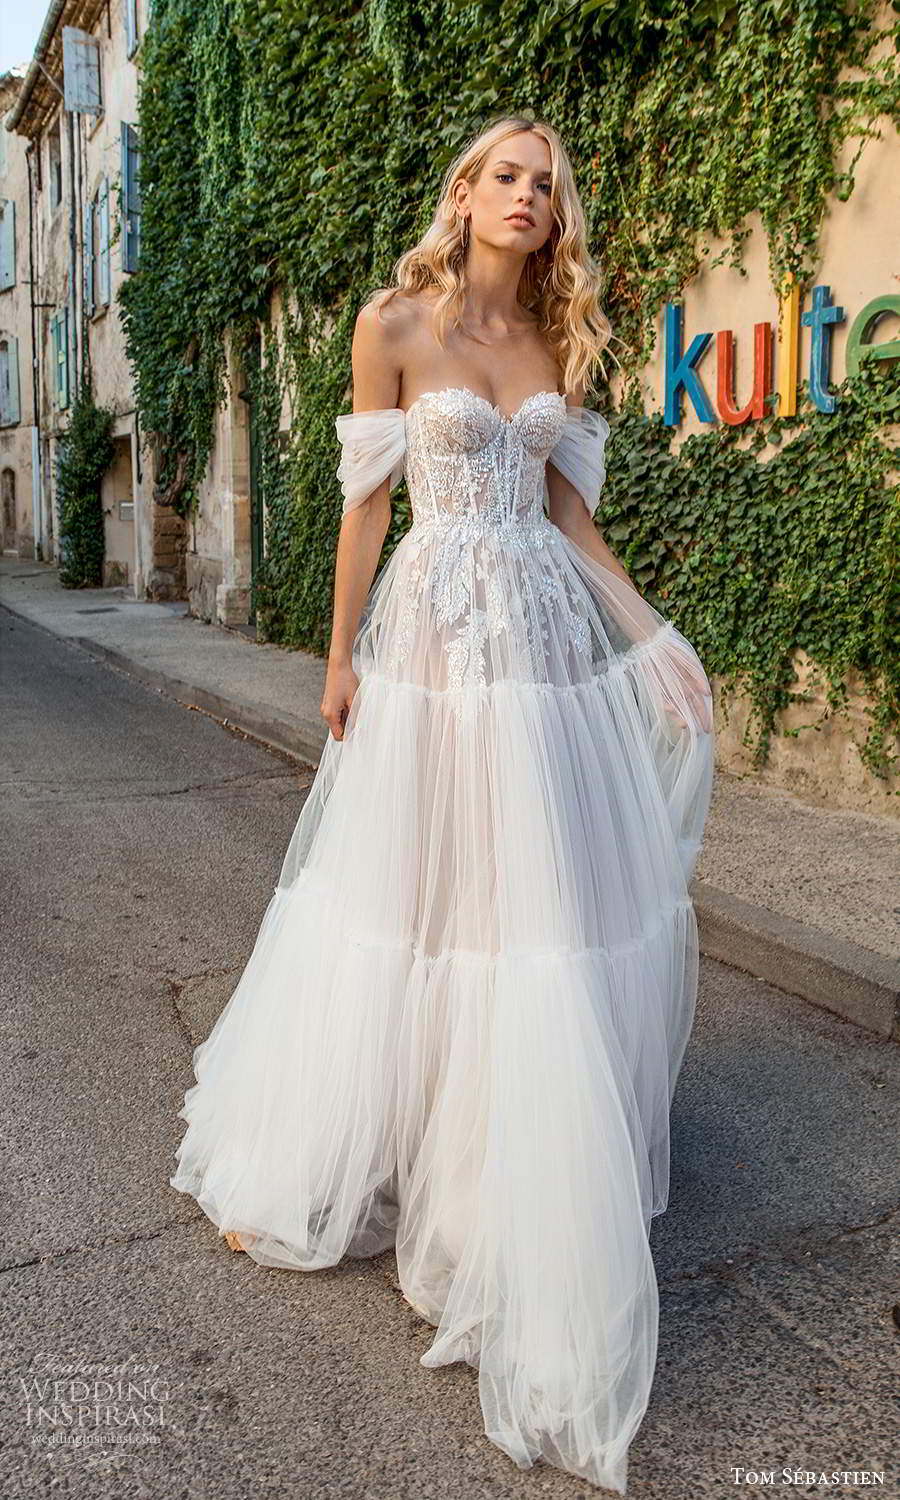 tom sebastien 2021 bridal provence off shoulder straps sweetheart neckline heavily embellished bodice a line ball gown wedding dress (5) mv